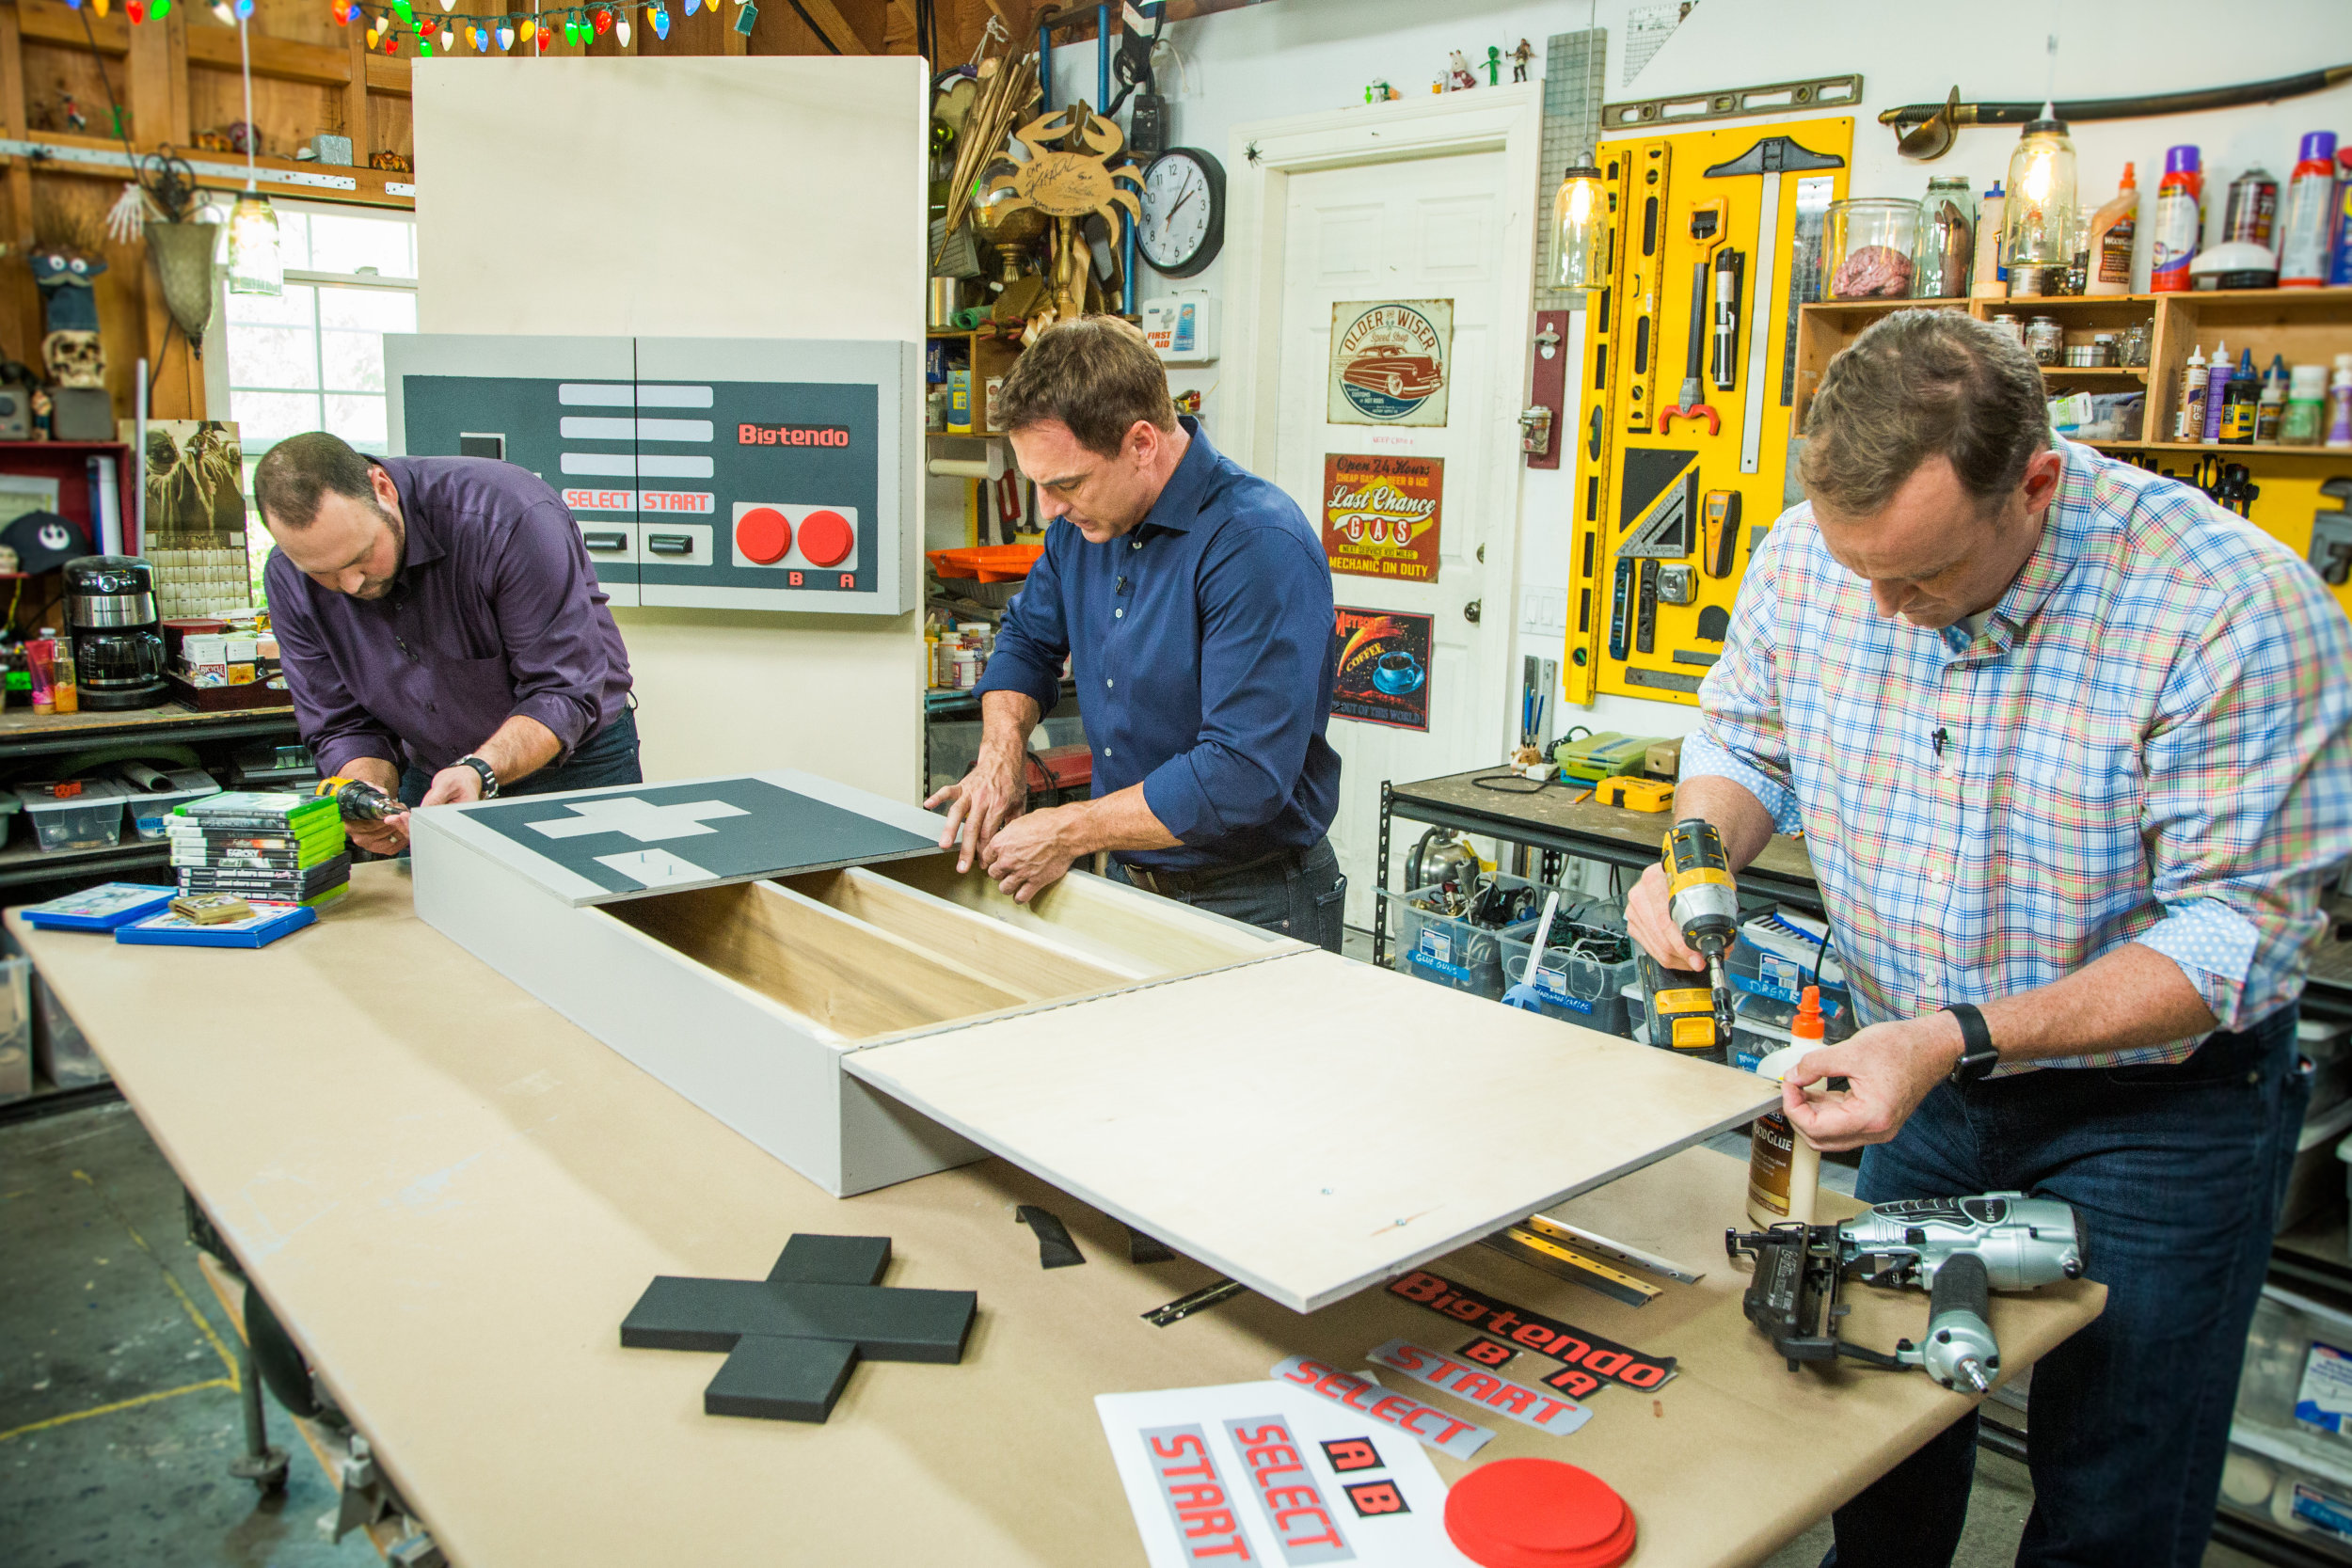 How To - DIY Video Game Cabinet | Home & Family | Hallmark Channel